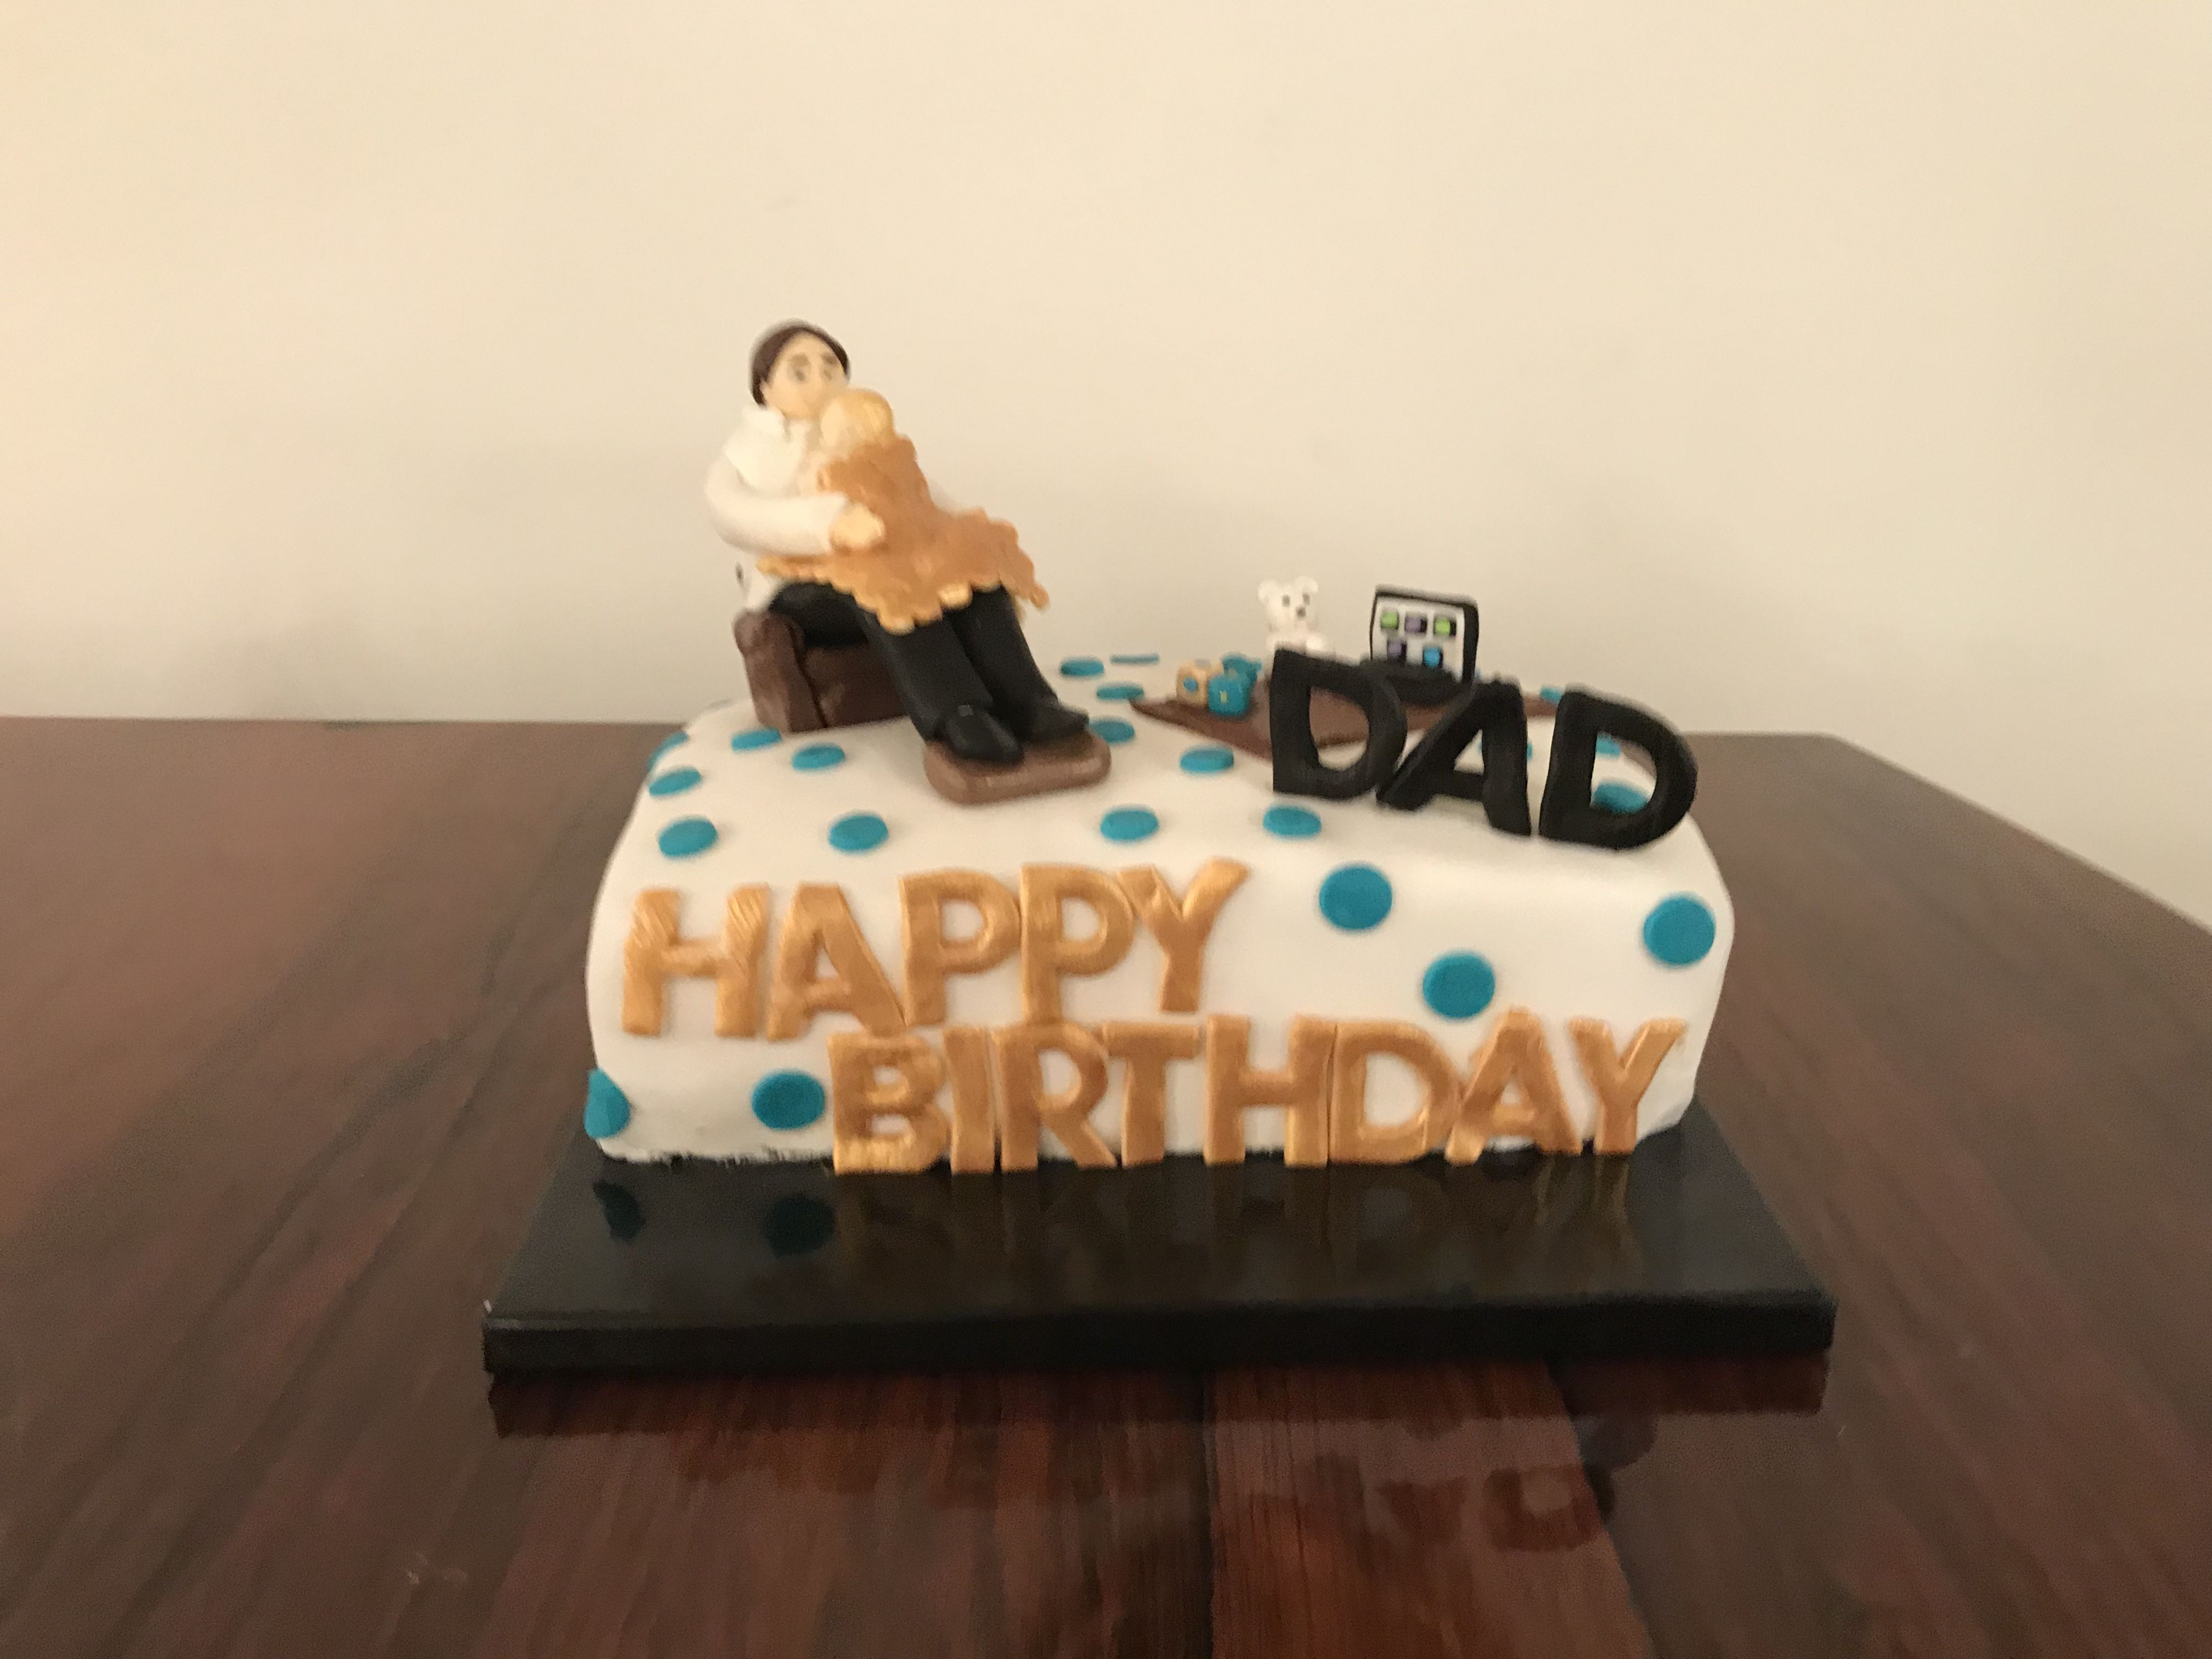 Happy Birthday Dad Cake By Noodys Baby And Dad Parent Cake New Born